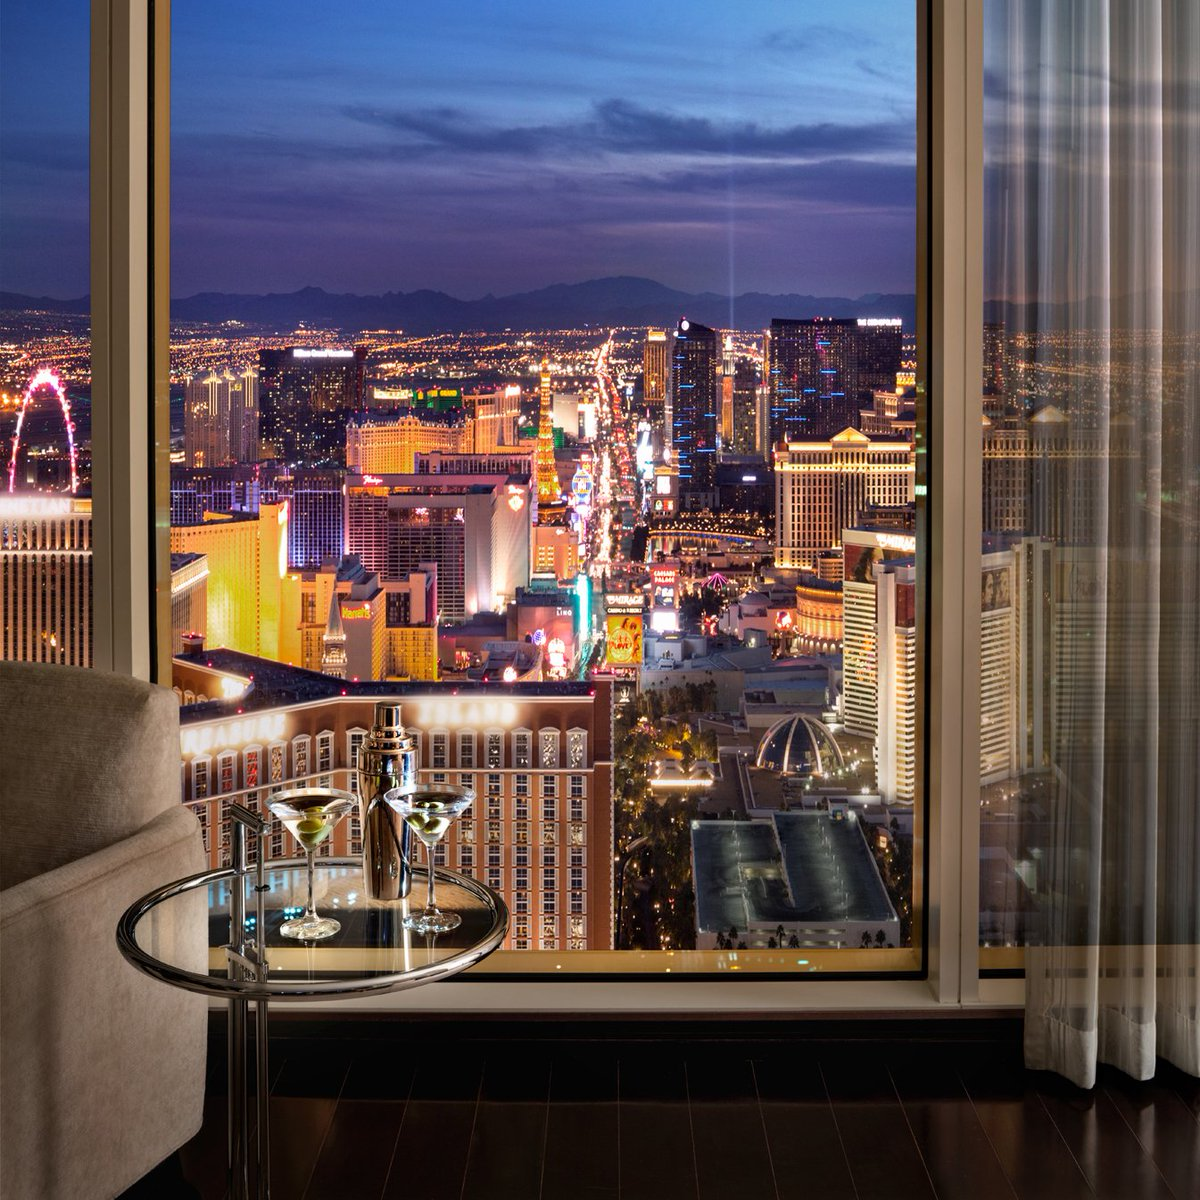 Las Vegas is more than its casinos.  Explore the city on your own terms  @TrumpLasVegas